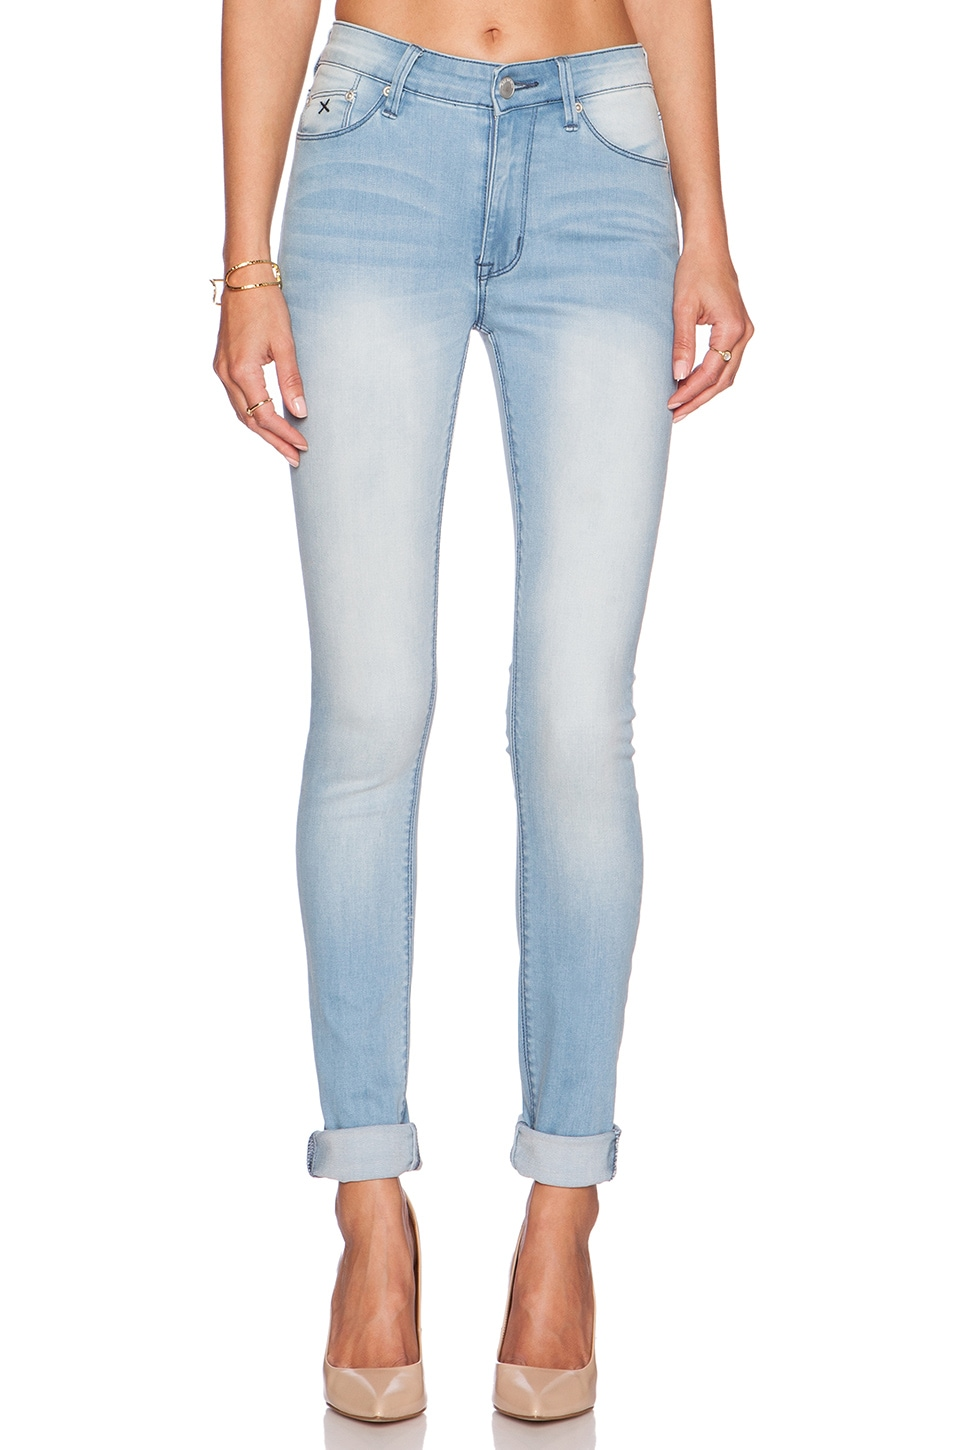 RES Denim Kitty Skinny in Stargazer